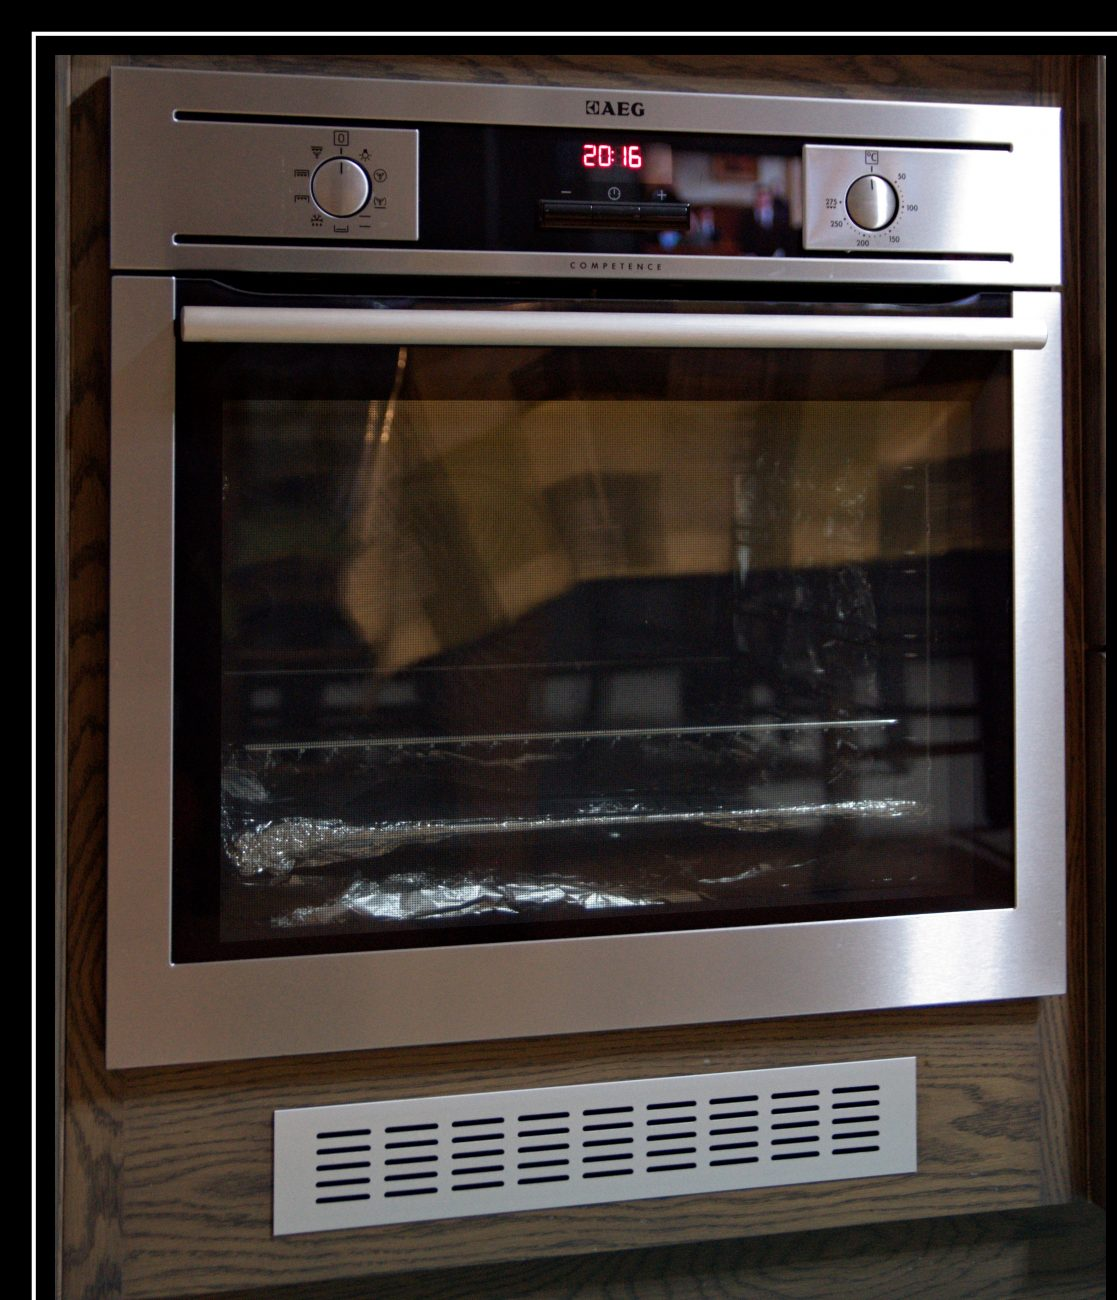 How To Clean An Oven Without Harsh Chemicals Using Baking